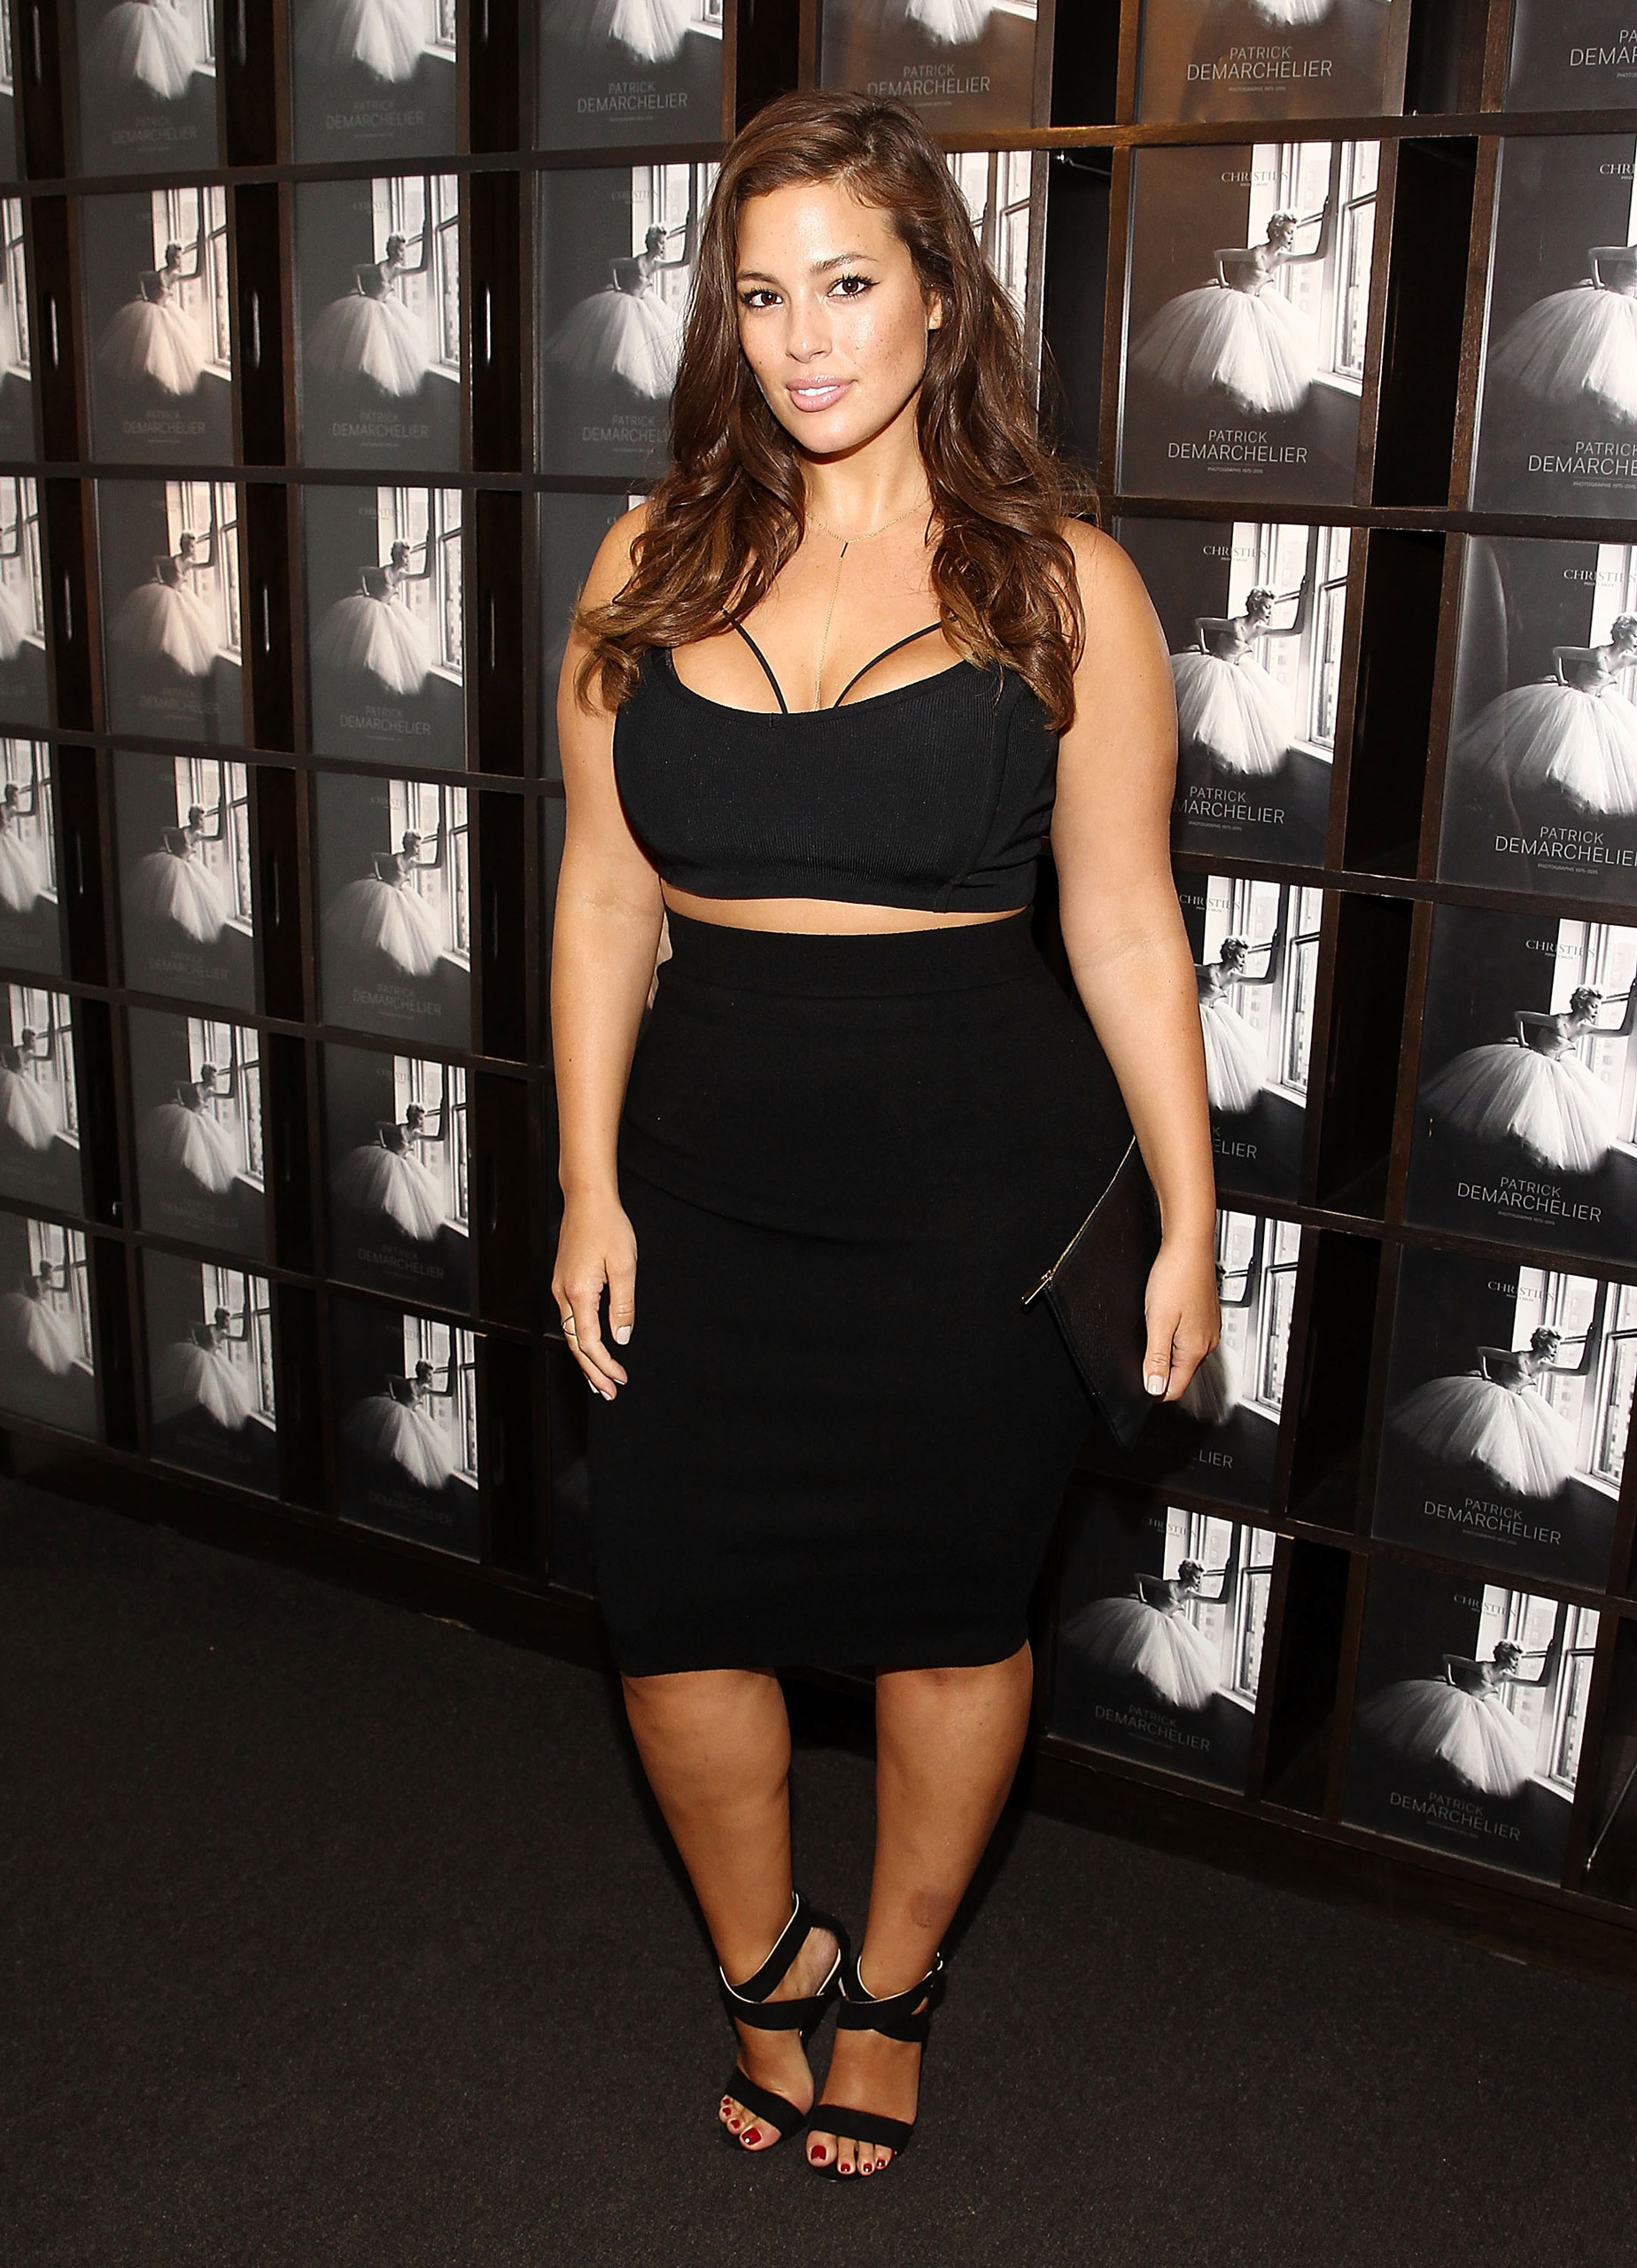 Model Ashley Graham attends the  Patrick Demarchelier  special exhibition preview to celebrate NYFW at Christie's in New York, on Sept. 9, 2015.